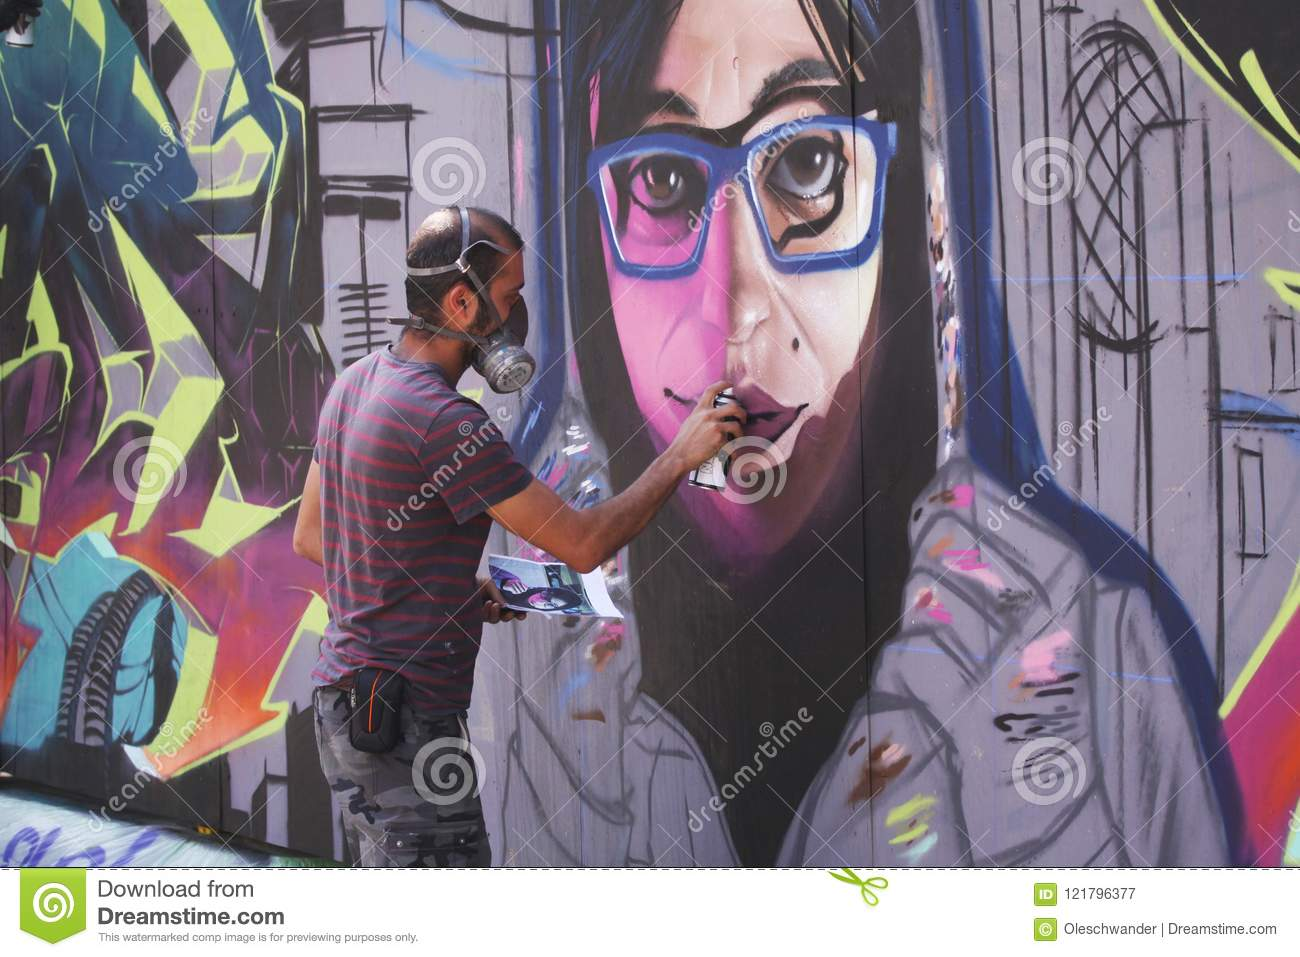 Copenhagen denmark july 20 2018 street artist painting colorful graffiti on wall modern art concept with urban guy painting live murales with aerosol